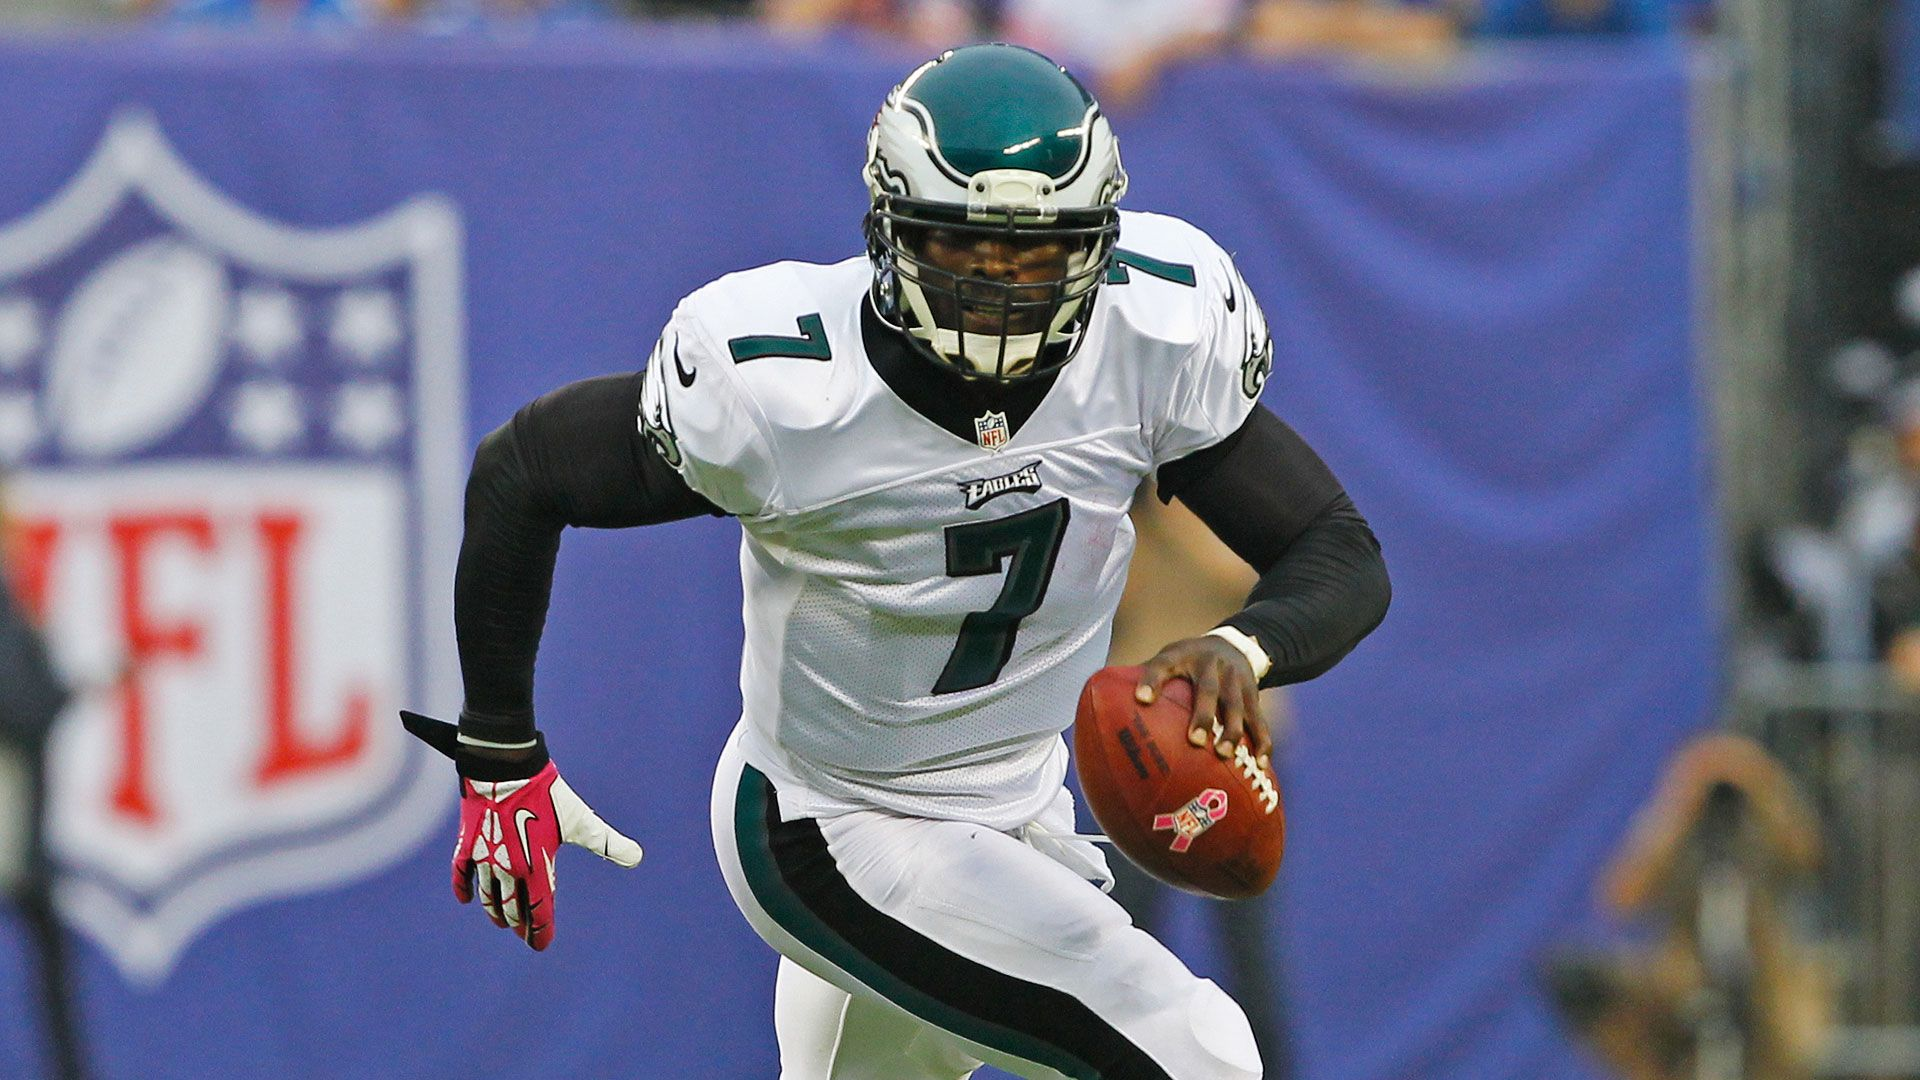 Michael Vick expects to start in '14